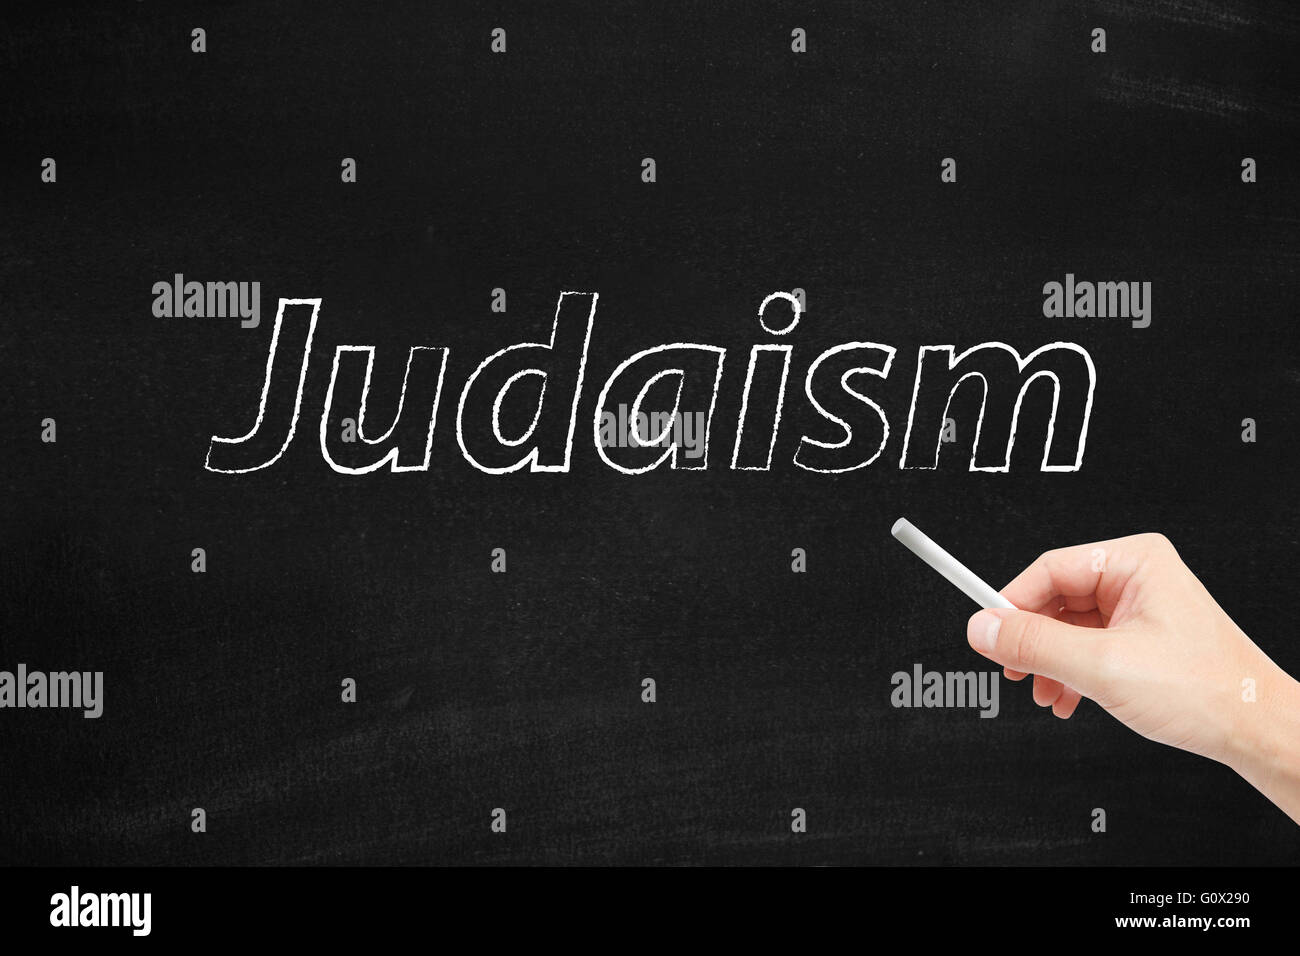 Judaism written on a blackboard Stock Photo